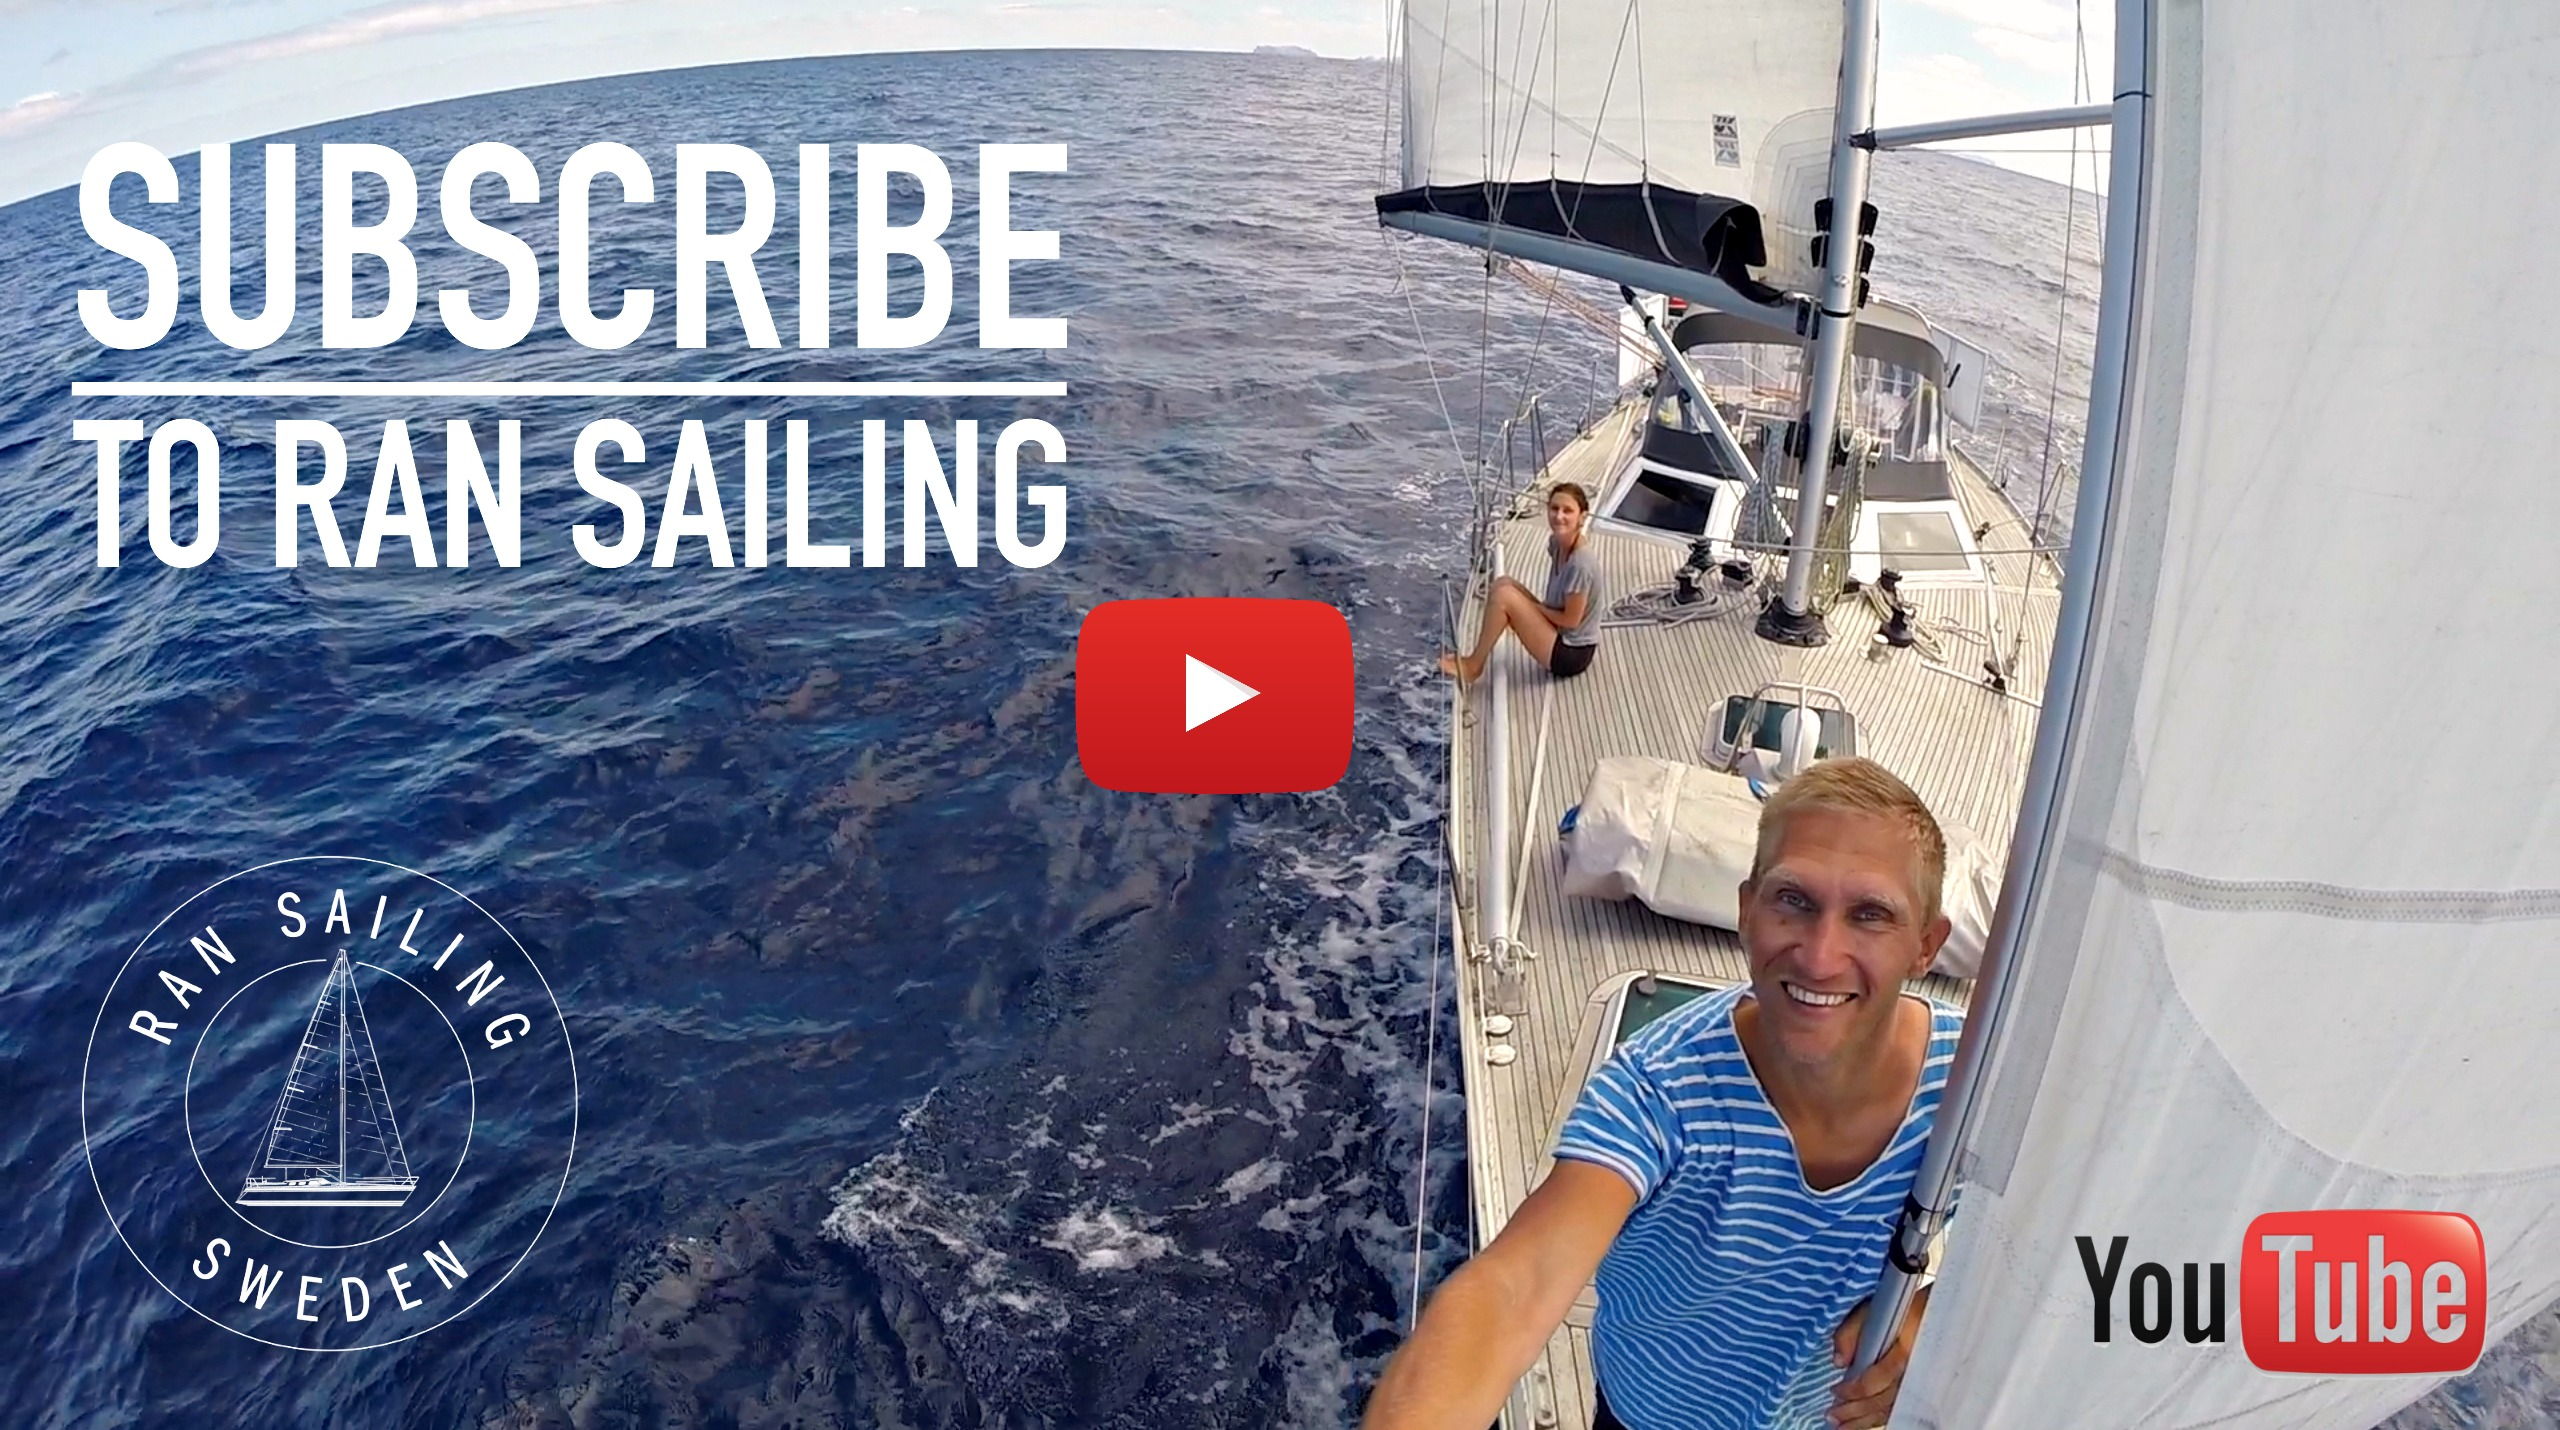 Subscribe to RAN Sailing on YouTube